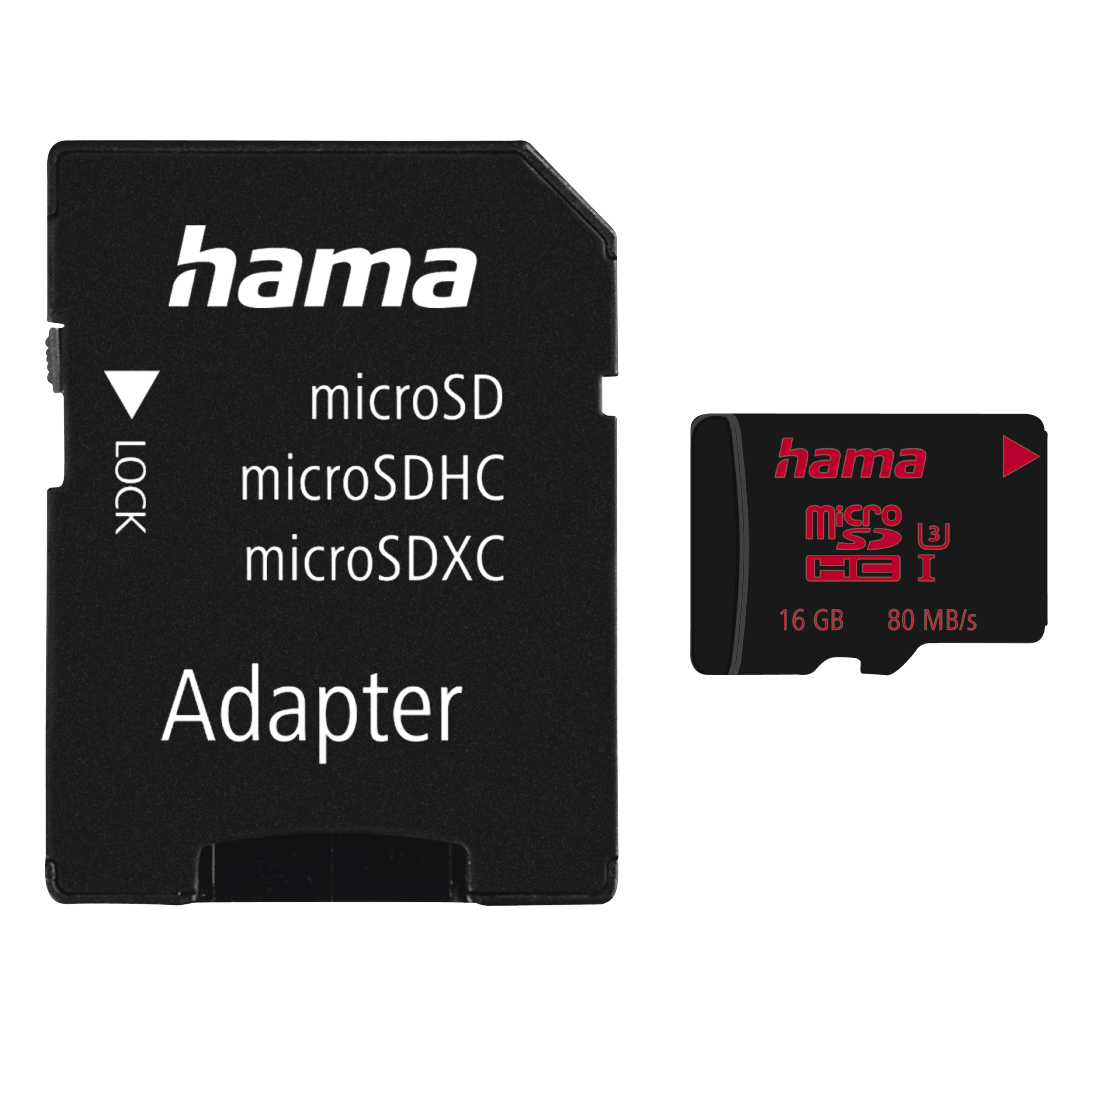 abx High-Res Image - Hama, microSDHC 16GB UHS Speed Class 3 UHS-I 80MB/s + Adapter/Photo